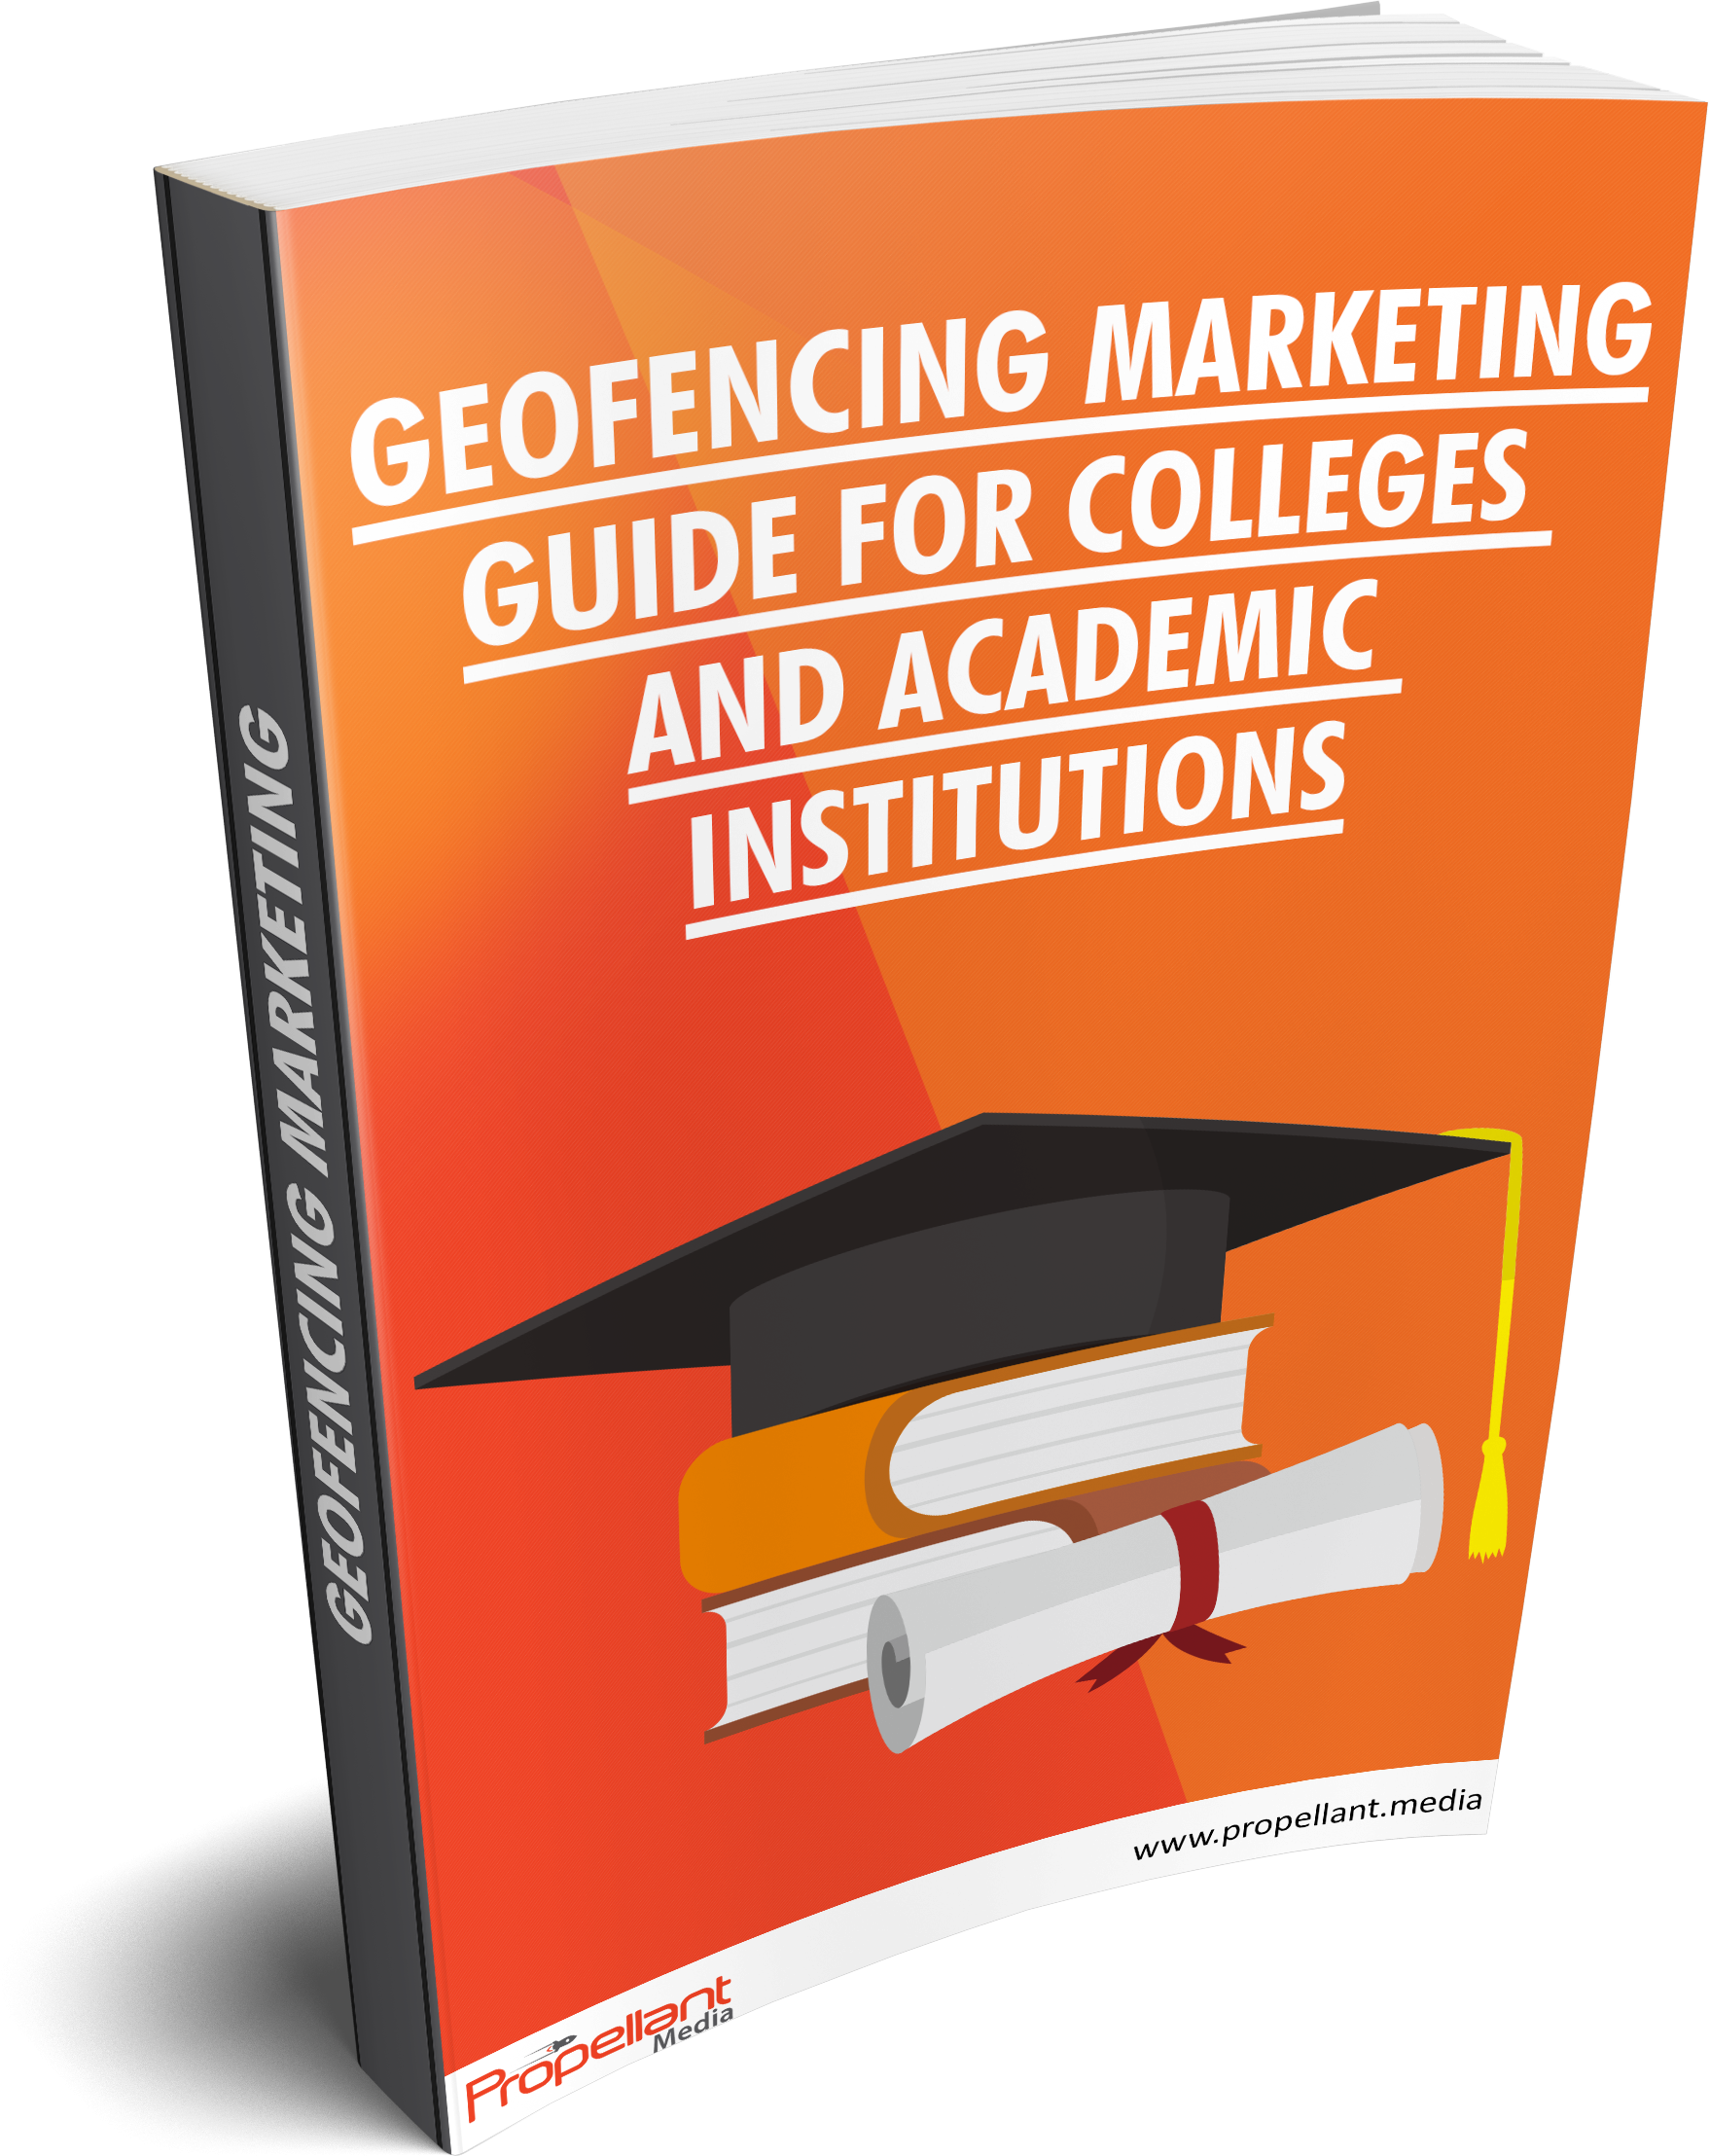 Geofencing Marketing Guide For Colleges & Academic Institutions [Download Guide]